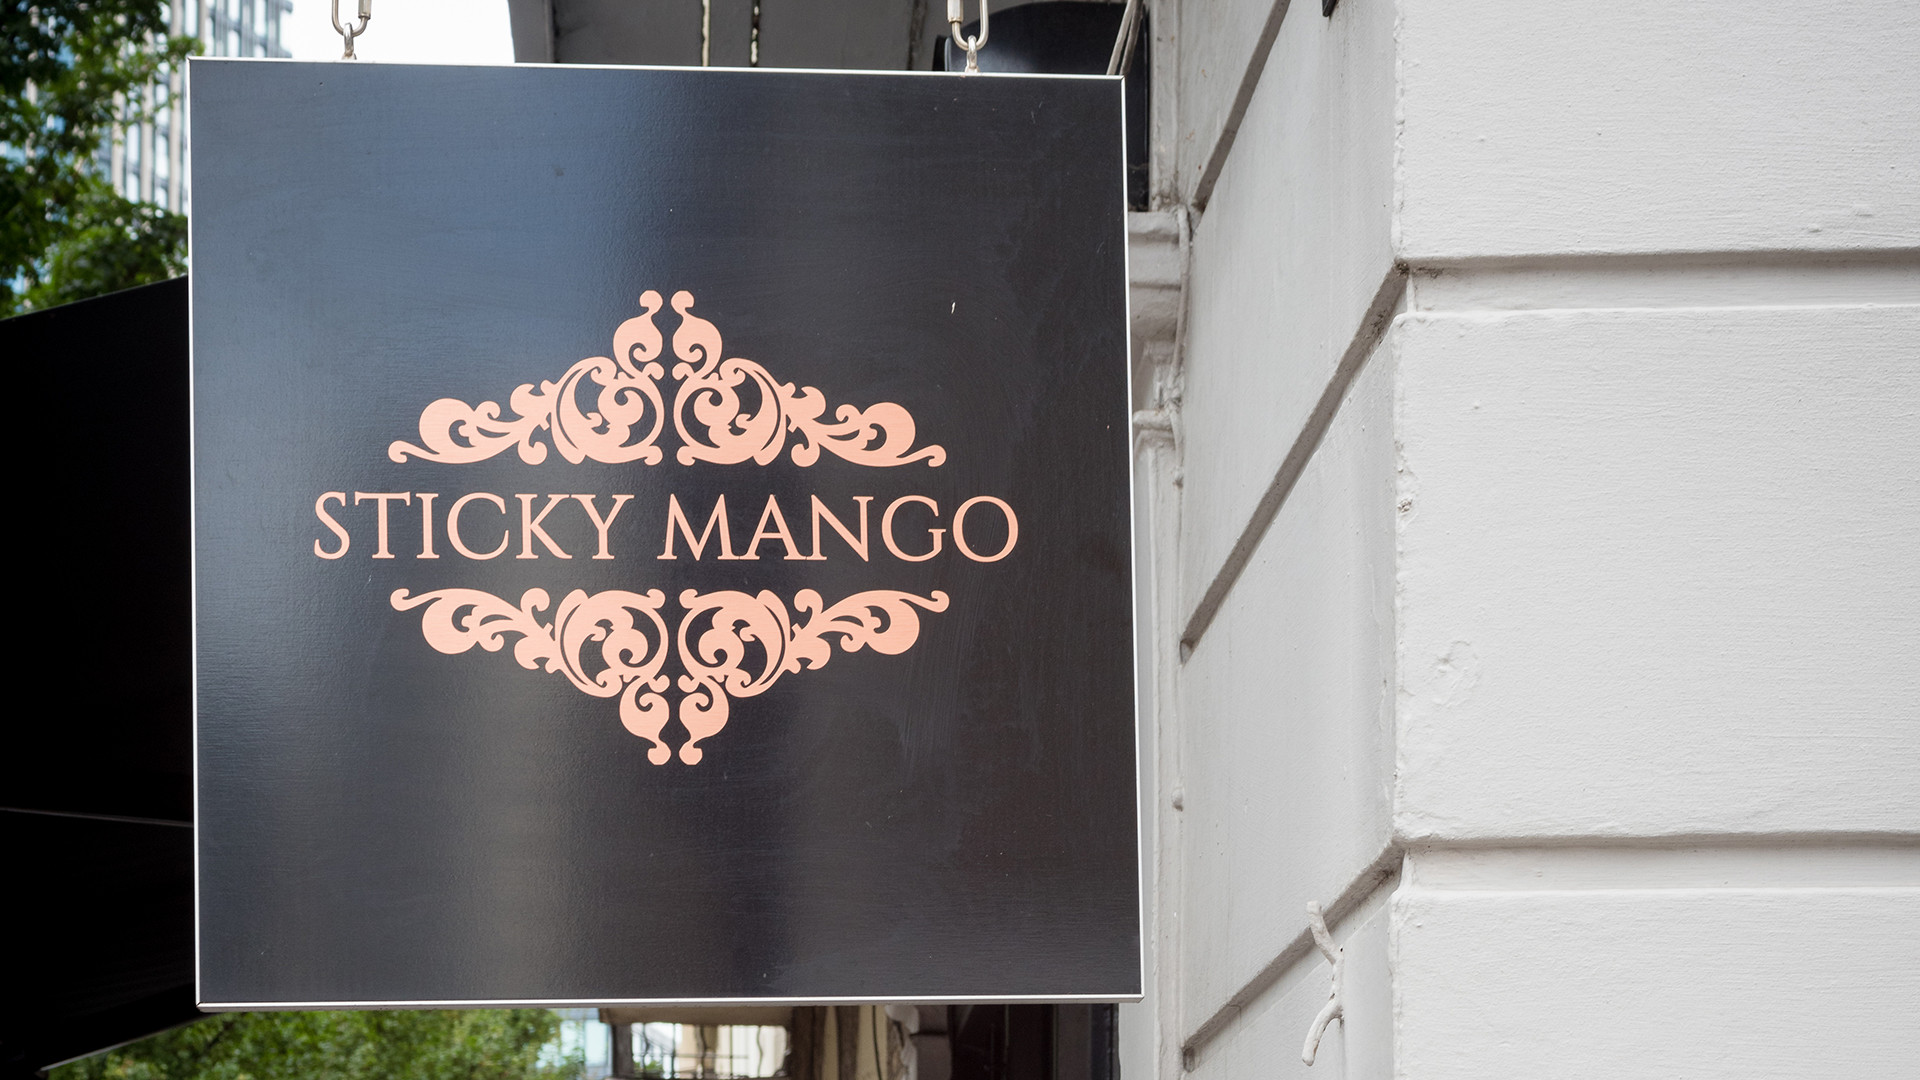 Festive menu at Sticky Mango